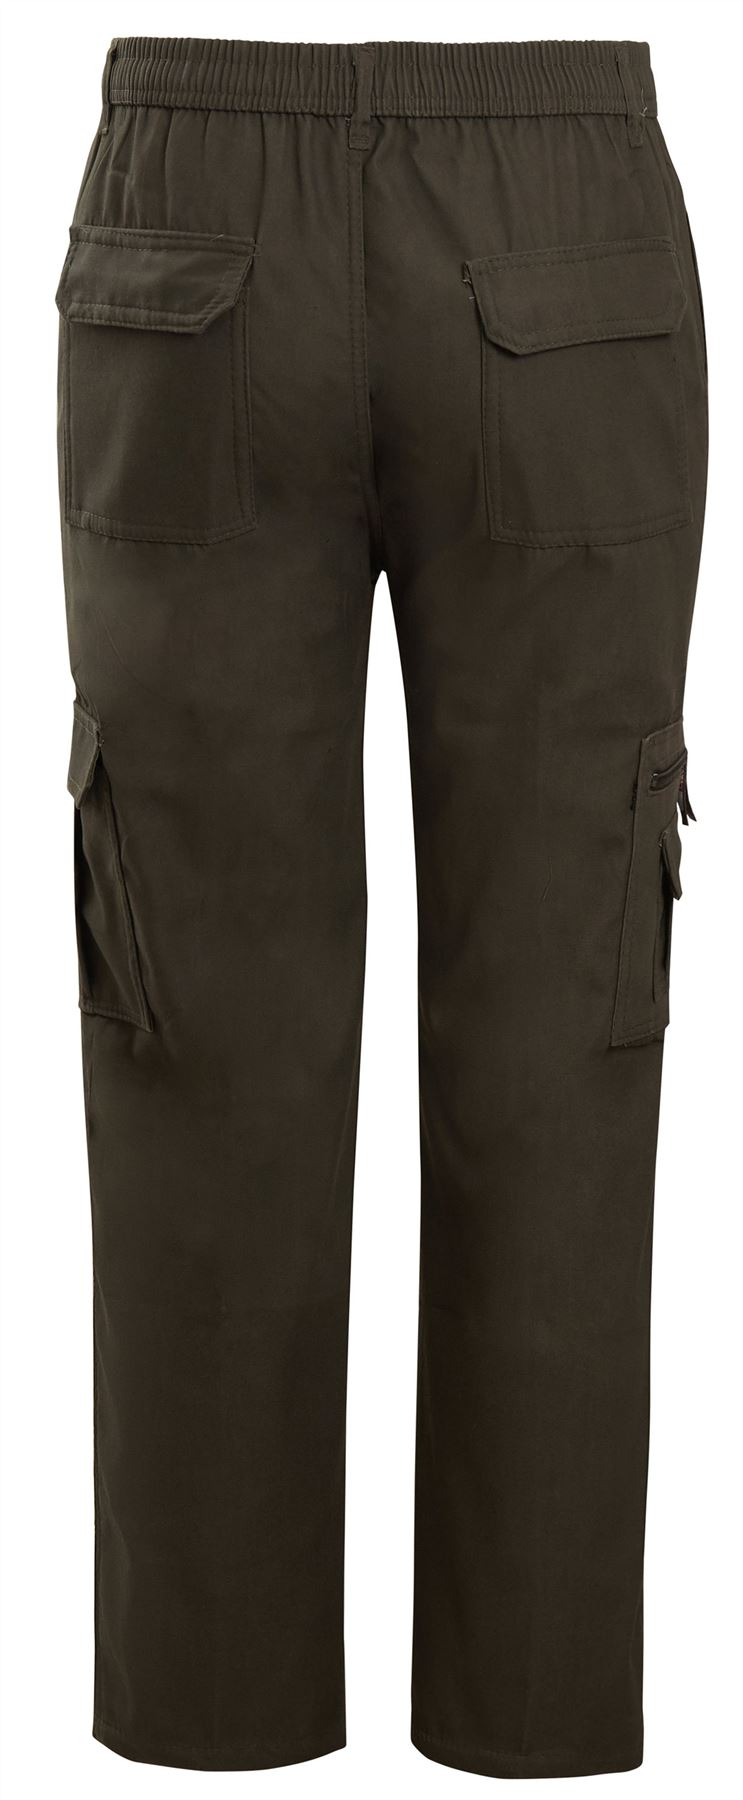 Shelikes Mens Lined Thermal Bottoms Elasticated Cargo Combat Multi Pocket Pants